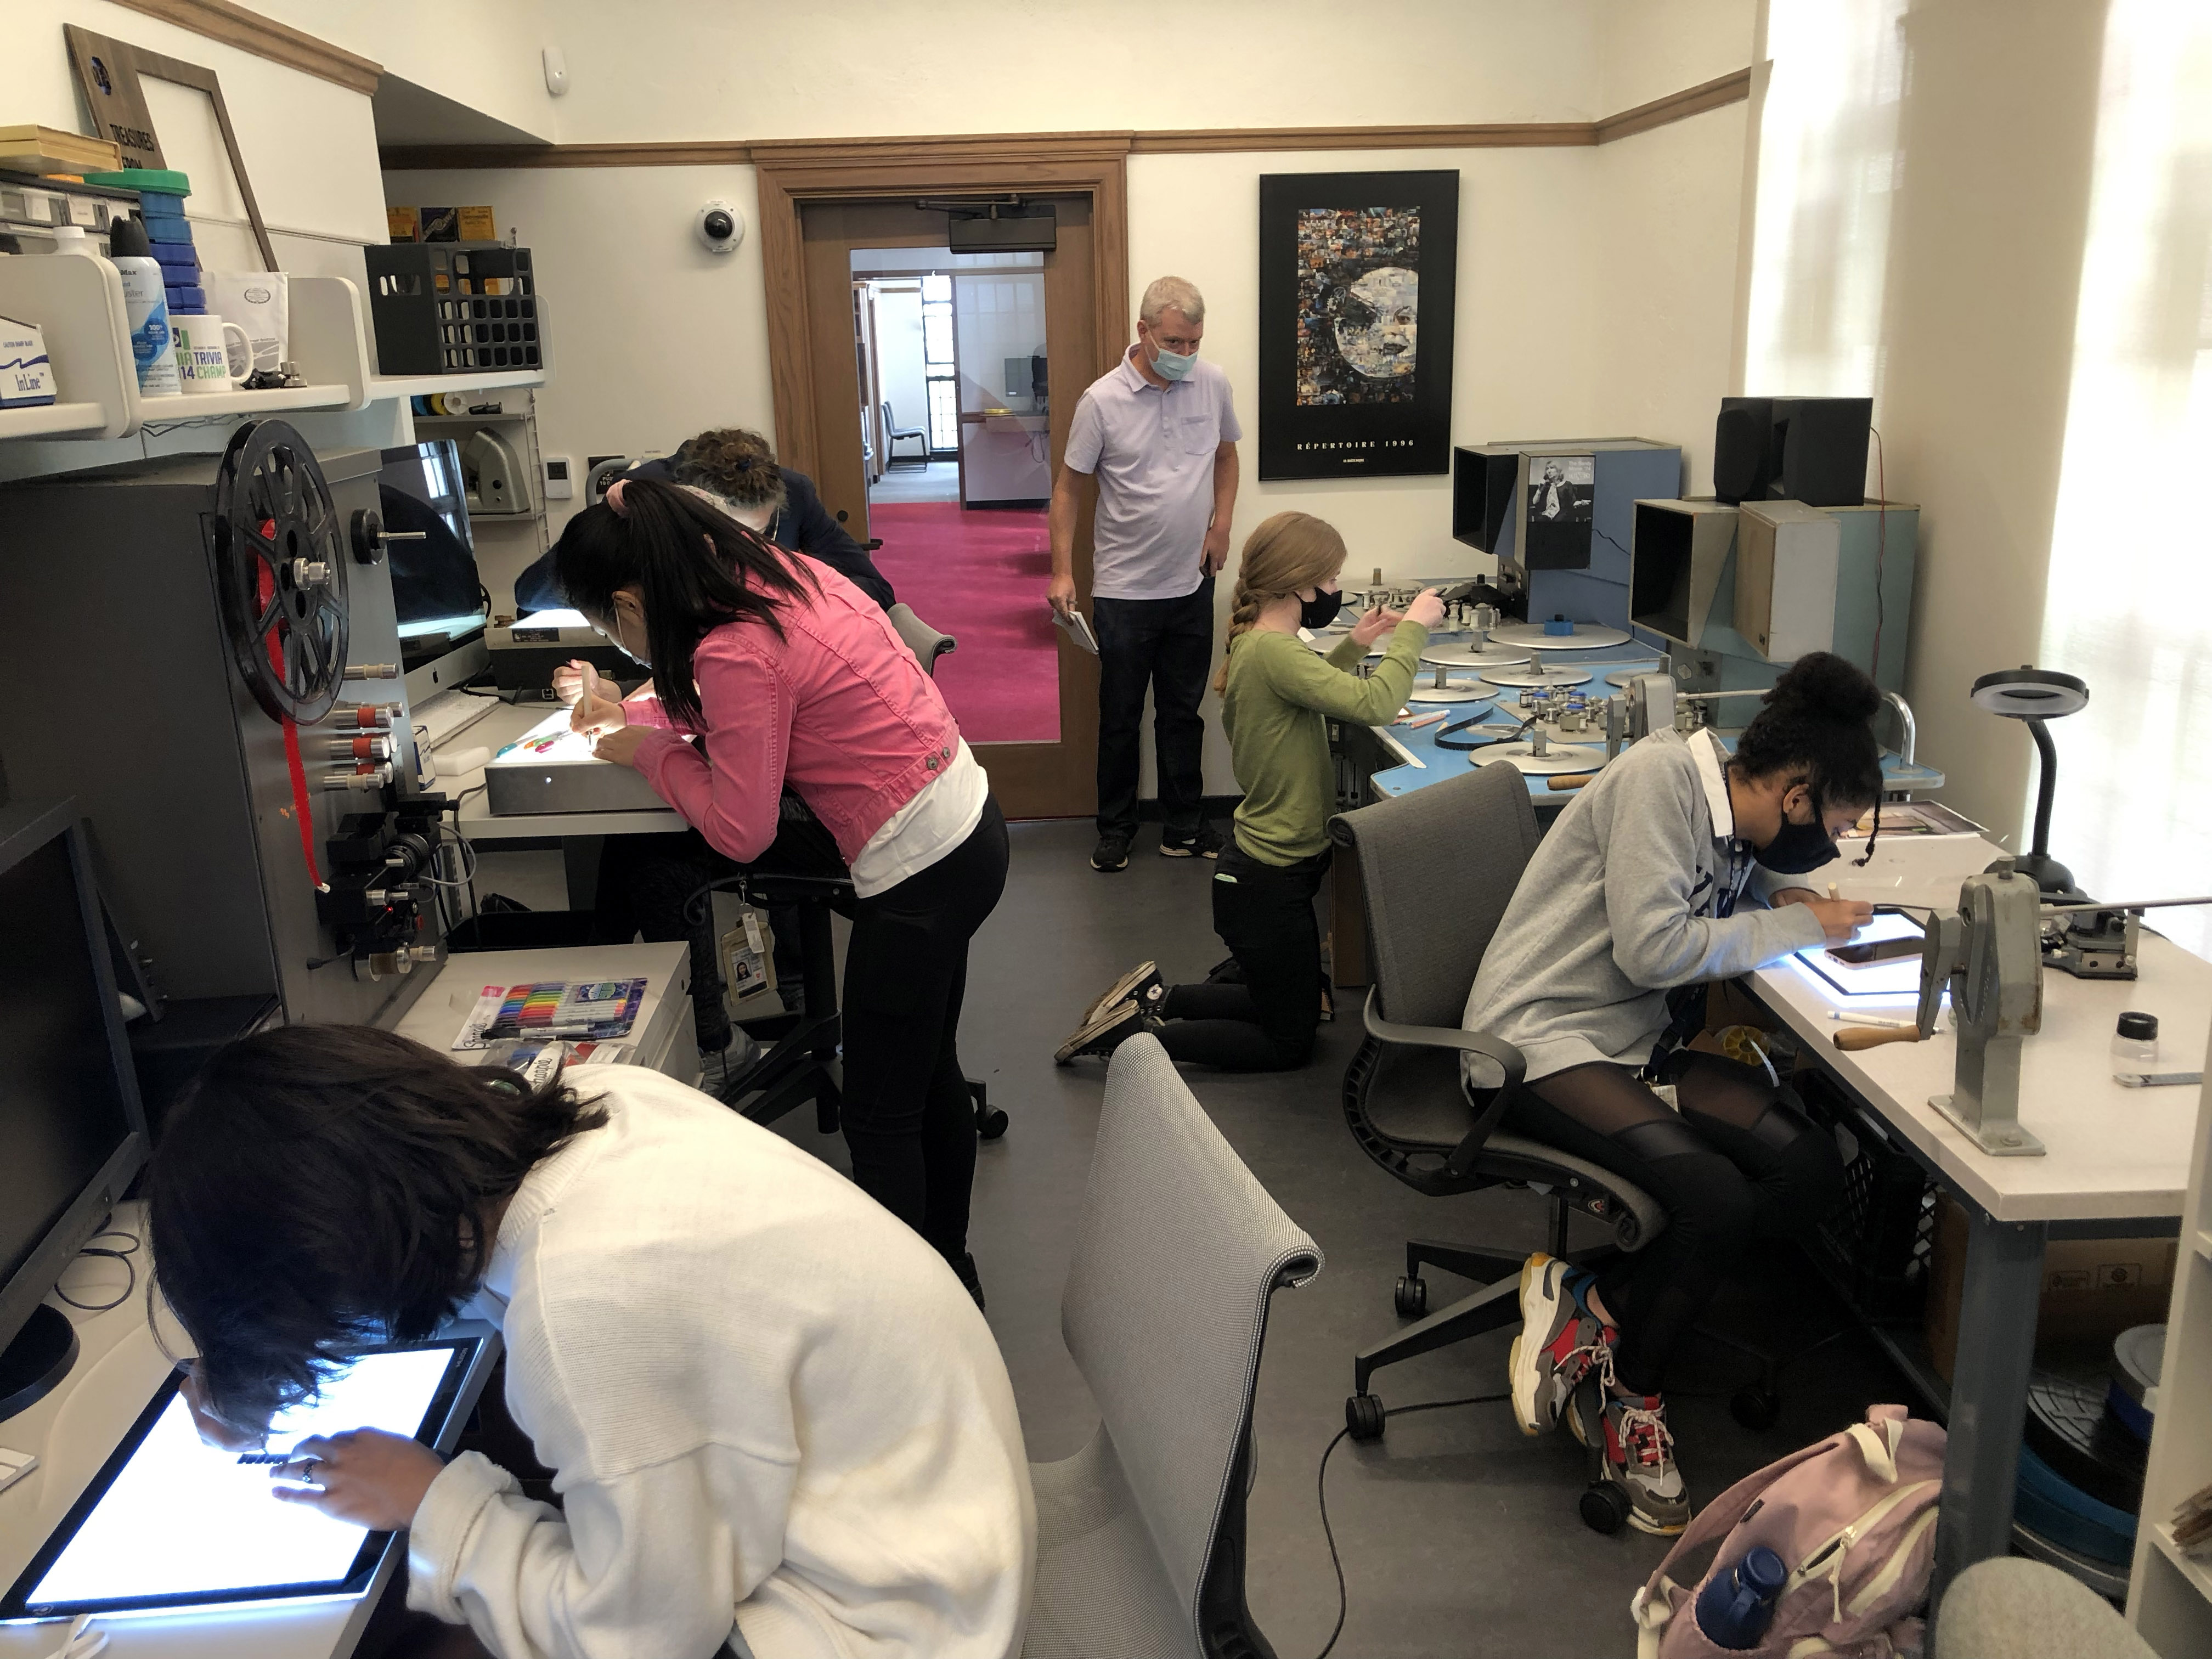 A class at work in the film conservation lab